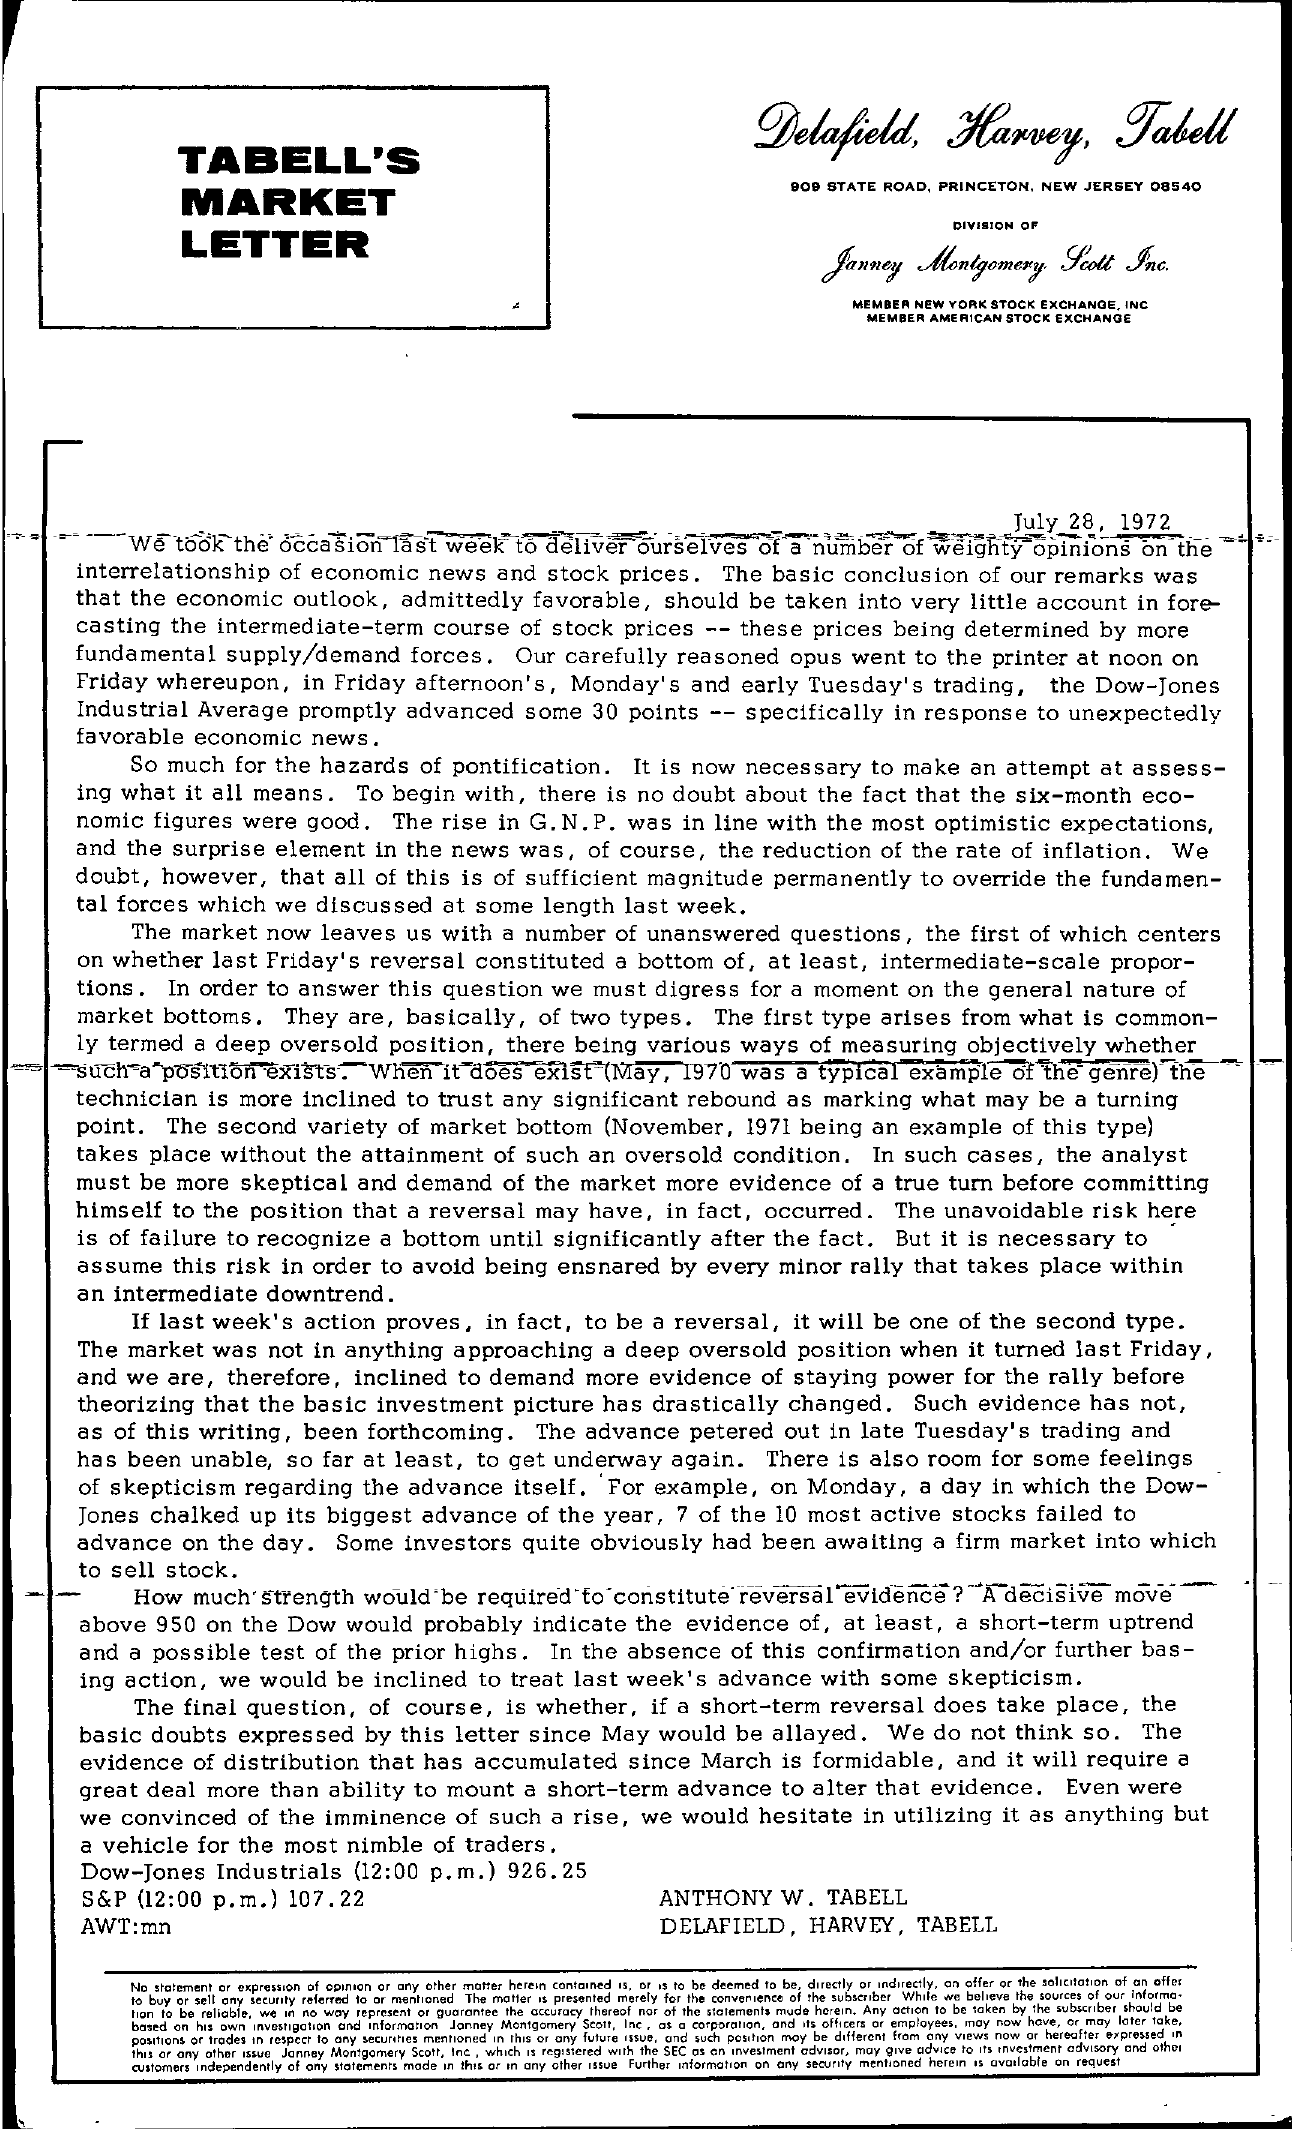 Tabell's Market Letter - July 28, 1972